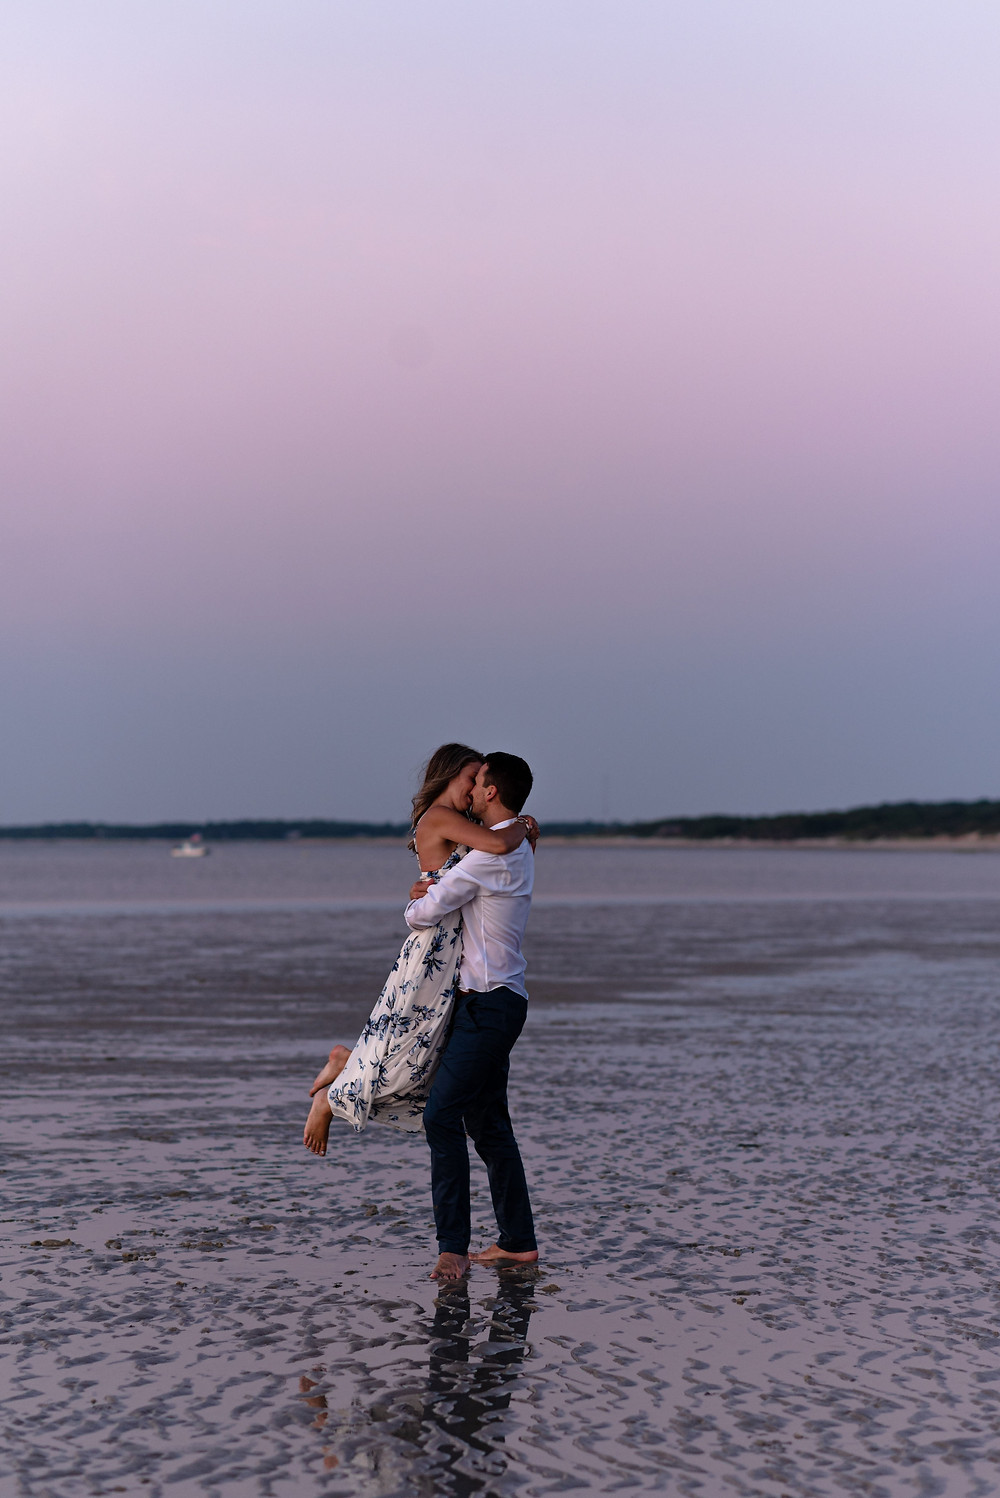 engagement session during blue hour on the beach. pink and blue skies. boy has girl in his arms, off of her feet and they're kissing